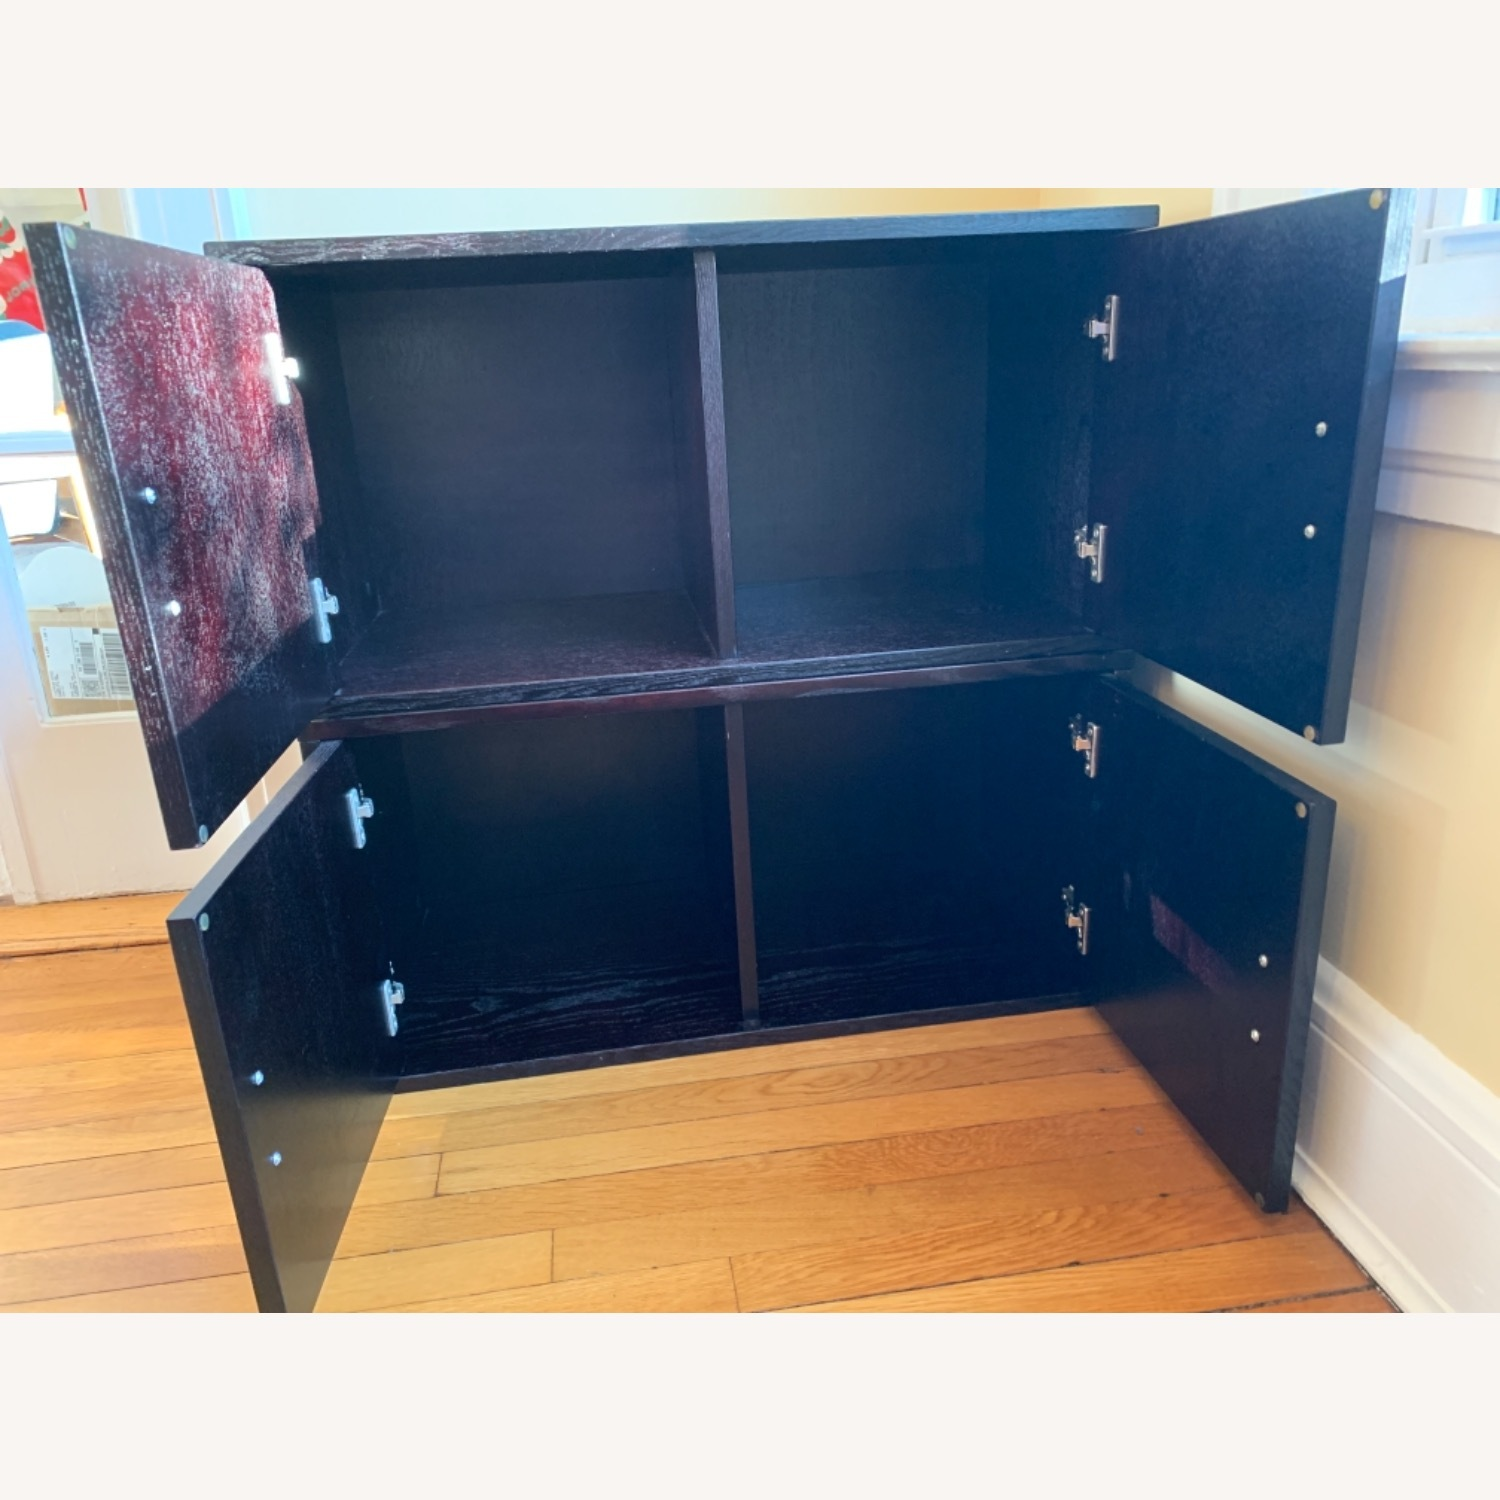 Crate & Barrel Cube Style Shelves - image-2